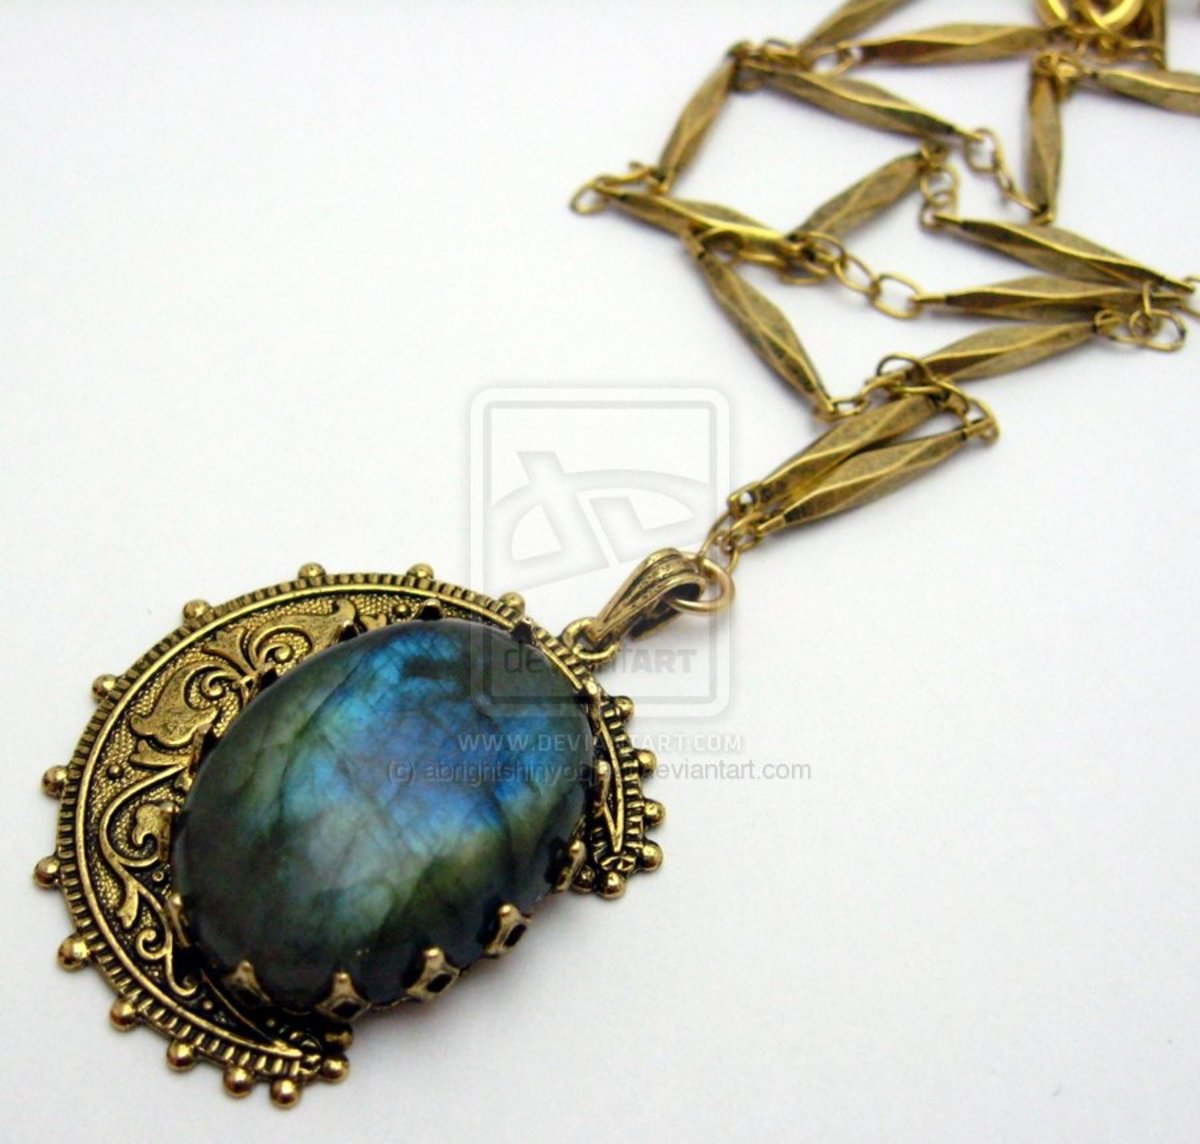 Featuring labradorite in jewelry can lend a very mysterious, alluring quality to a finished piece.